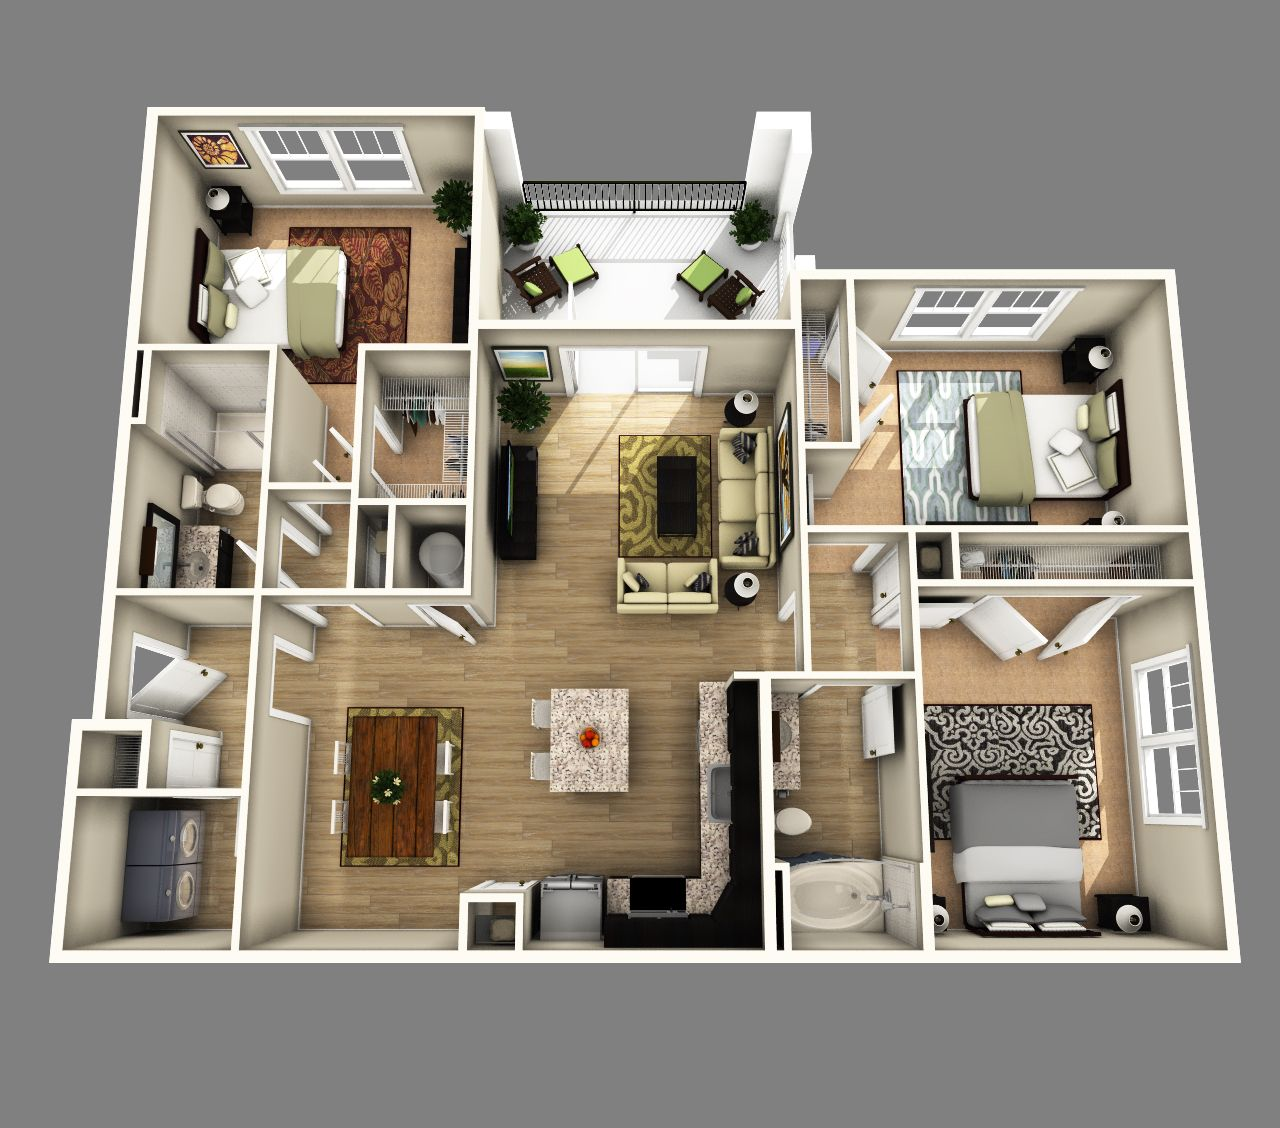 3d open floor plan 3 bedroom 2 bathroom google search 3 bedroom open floor plan